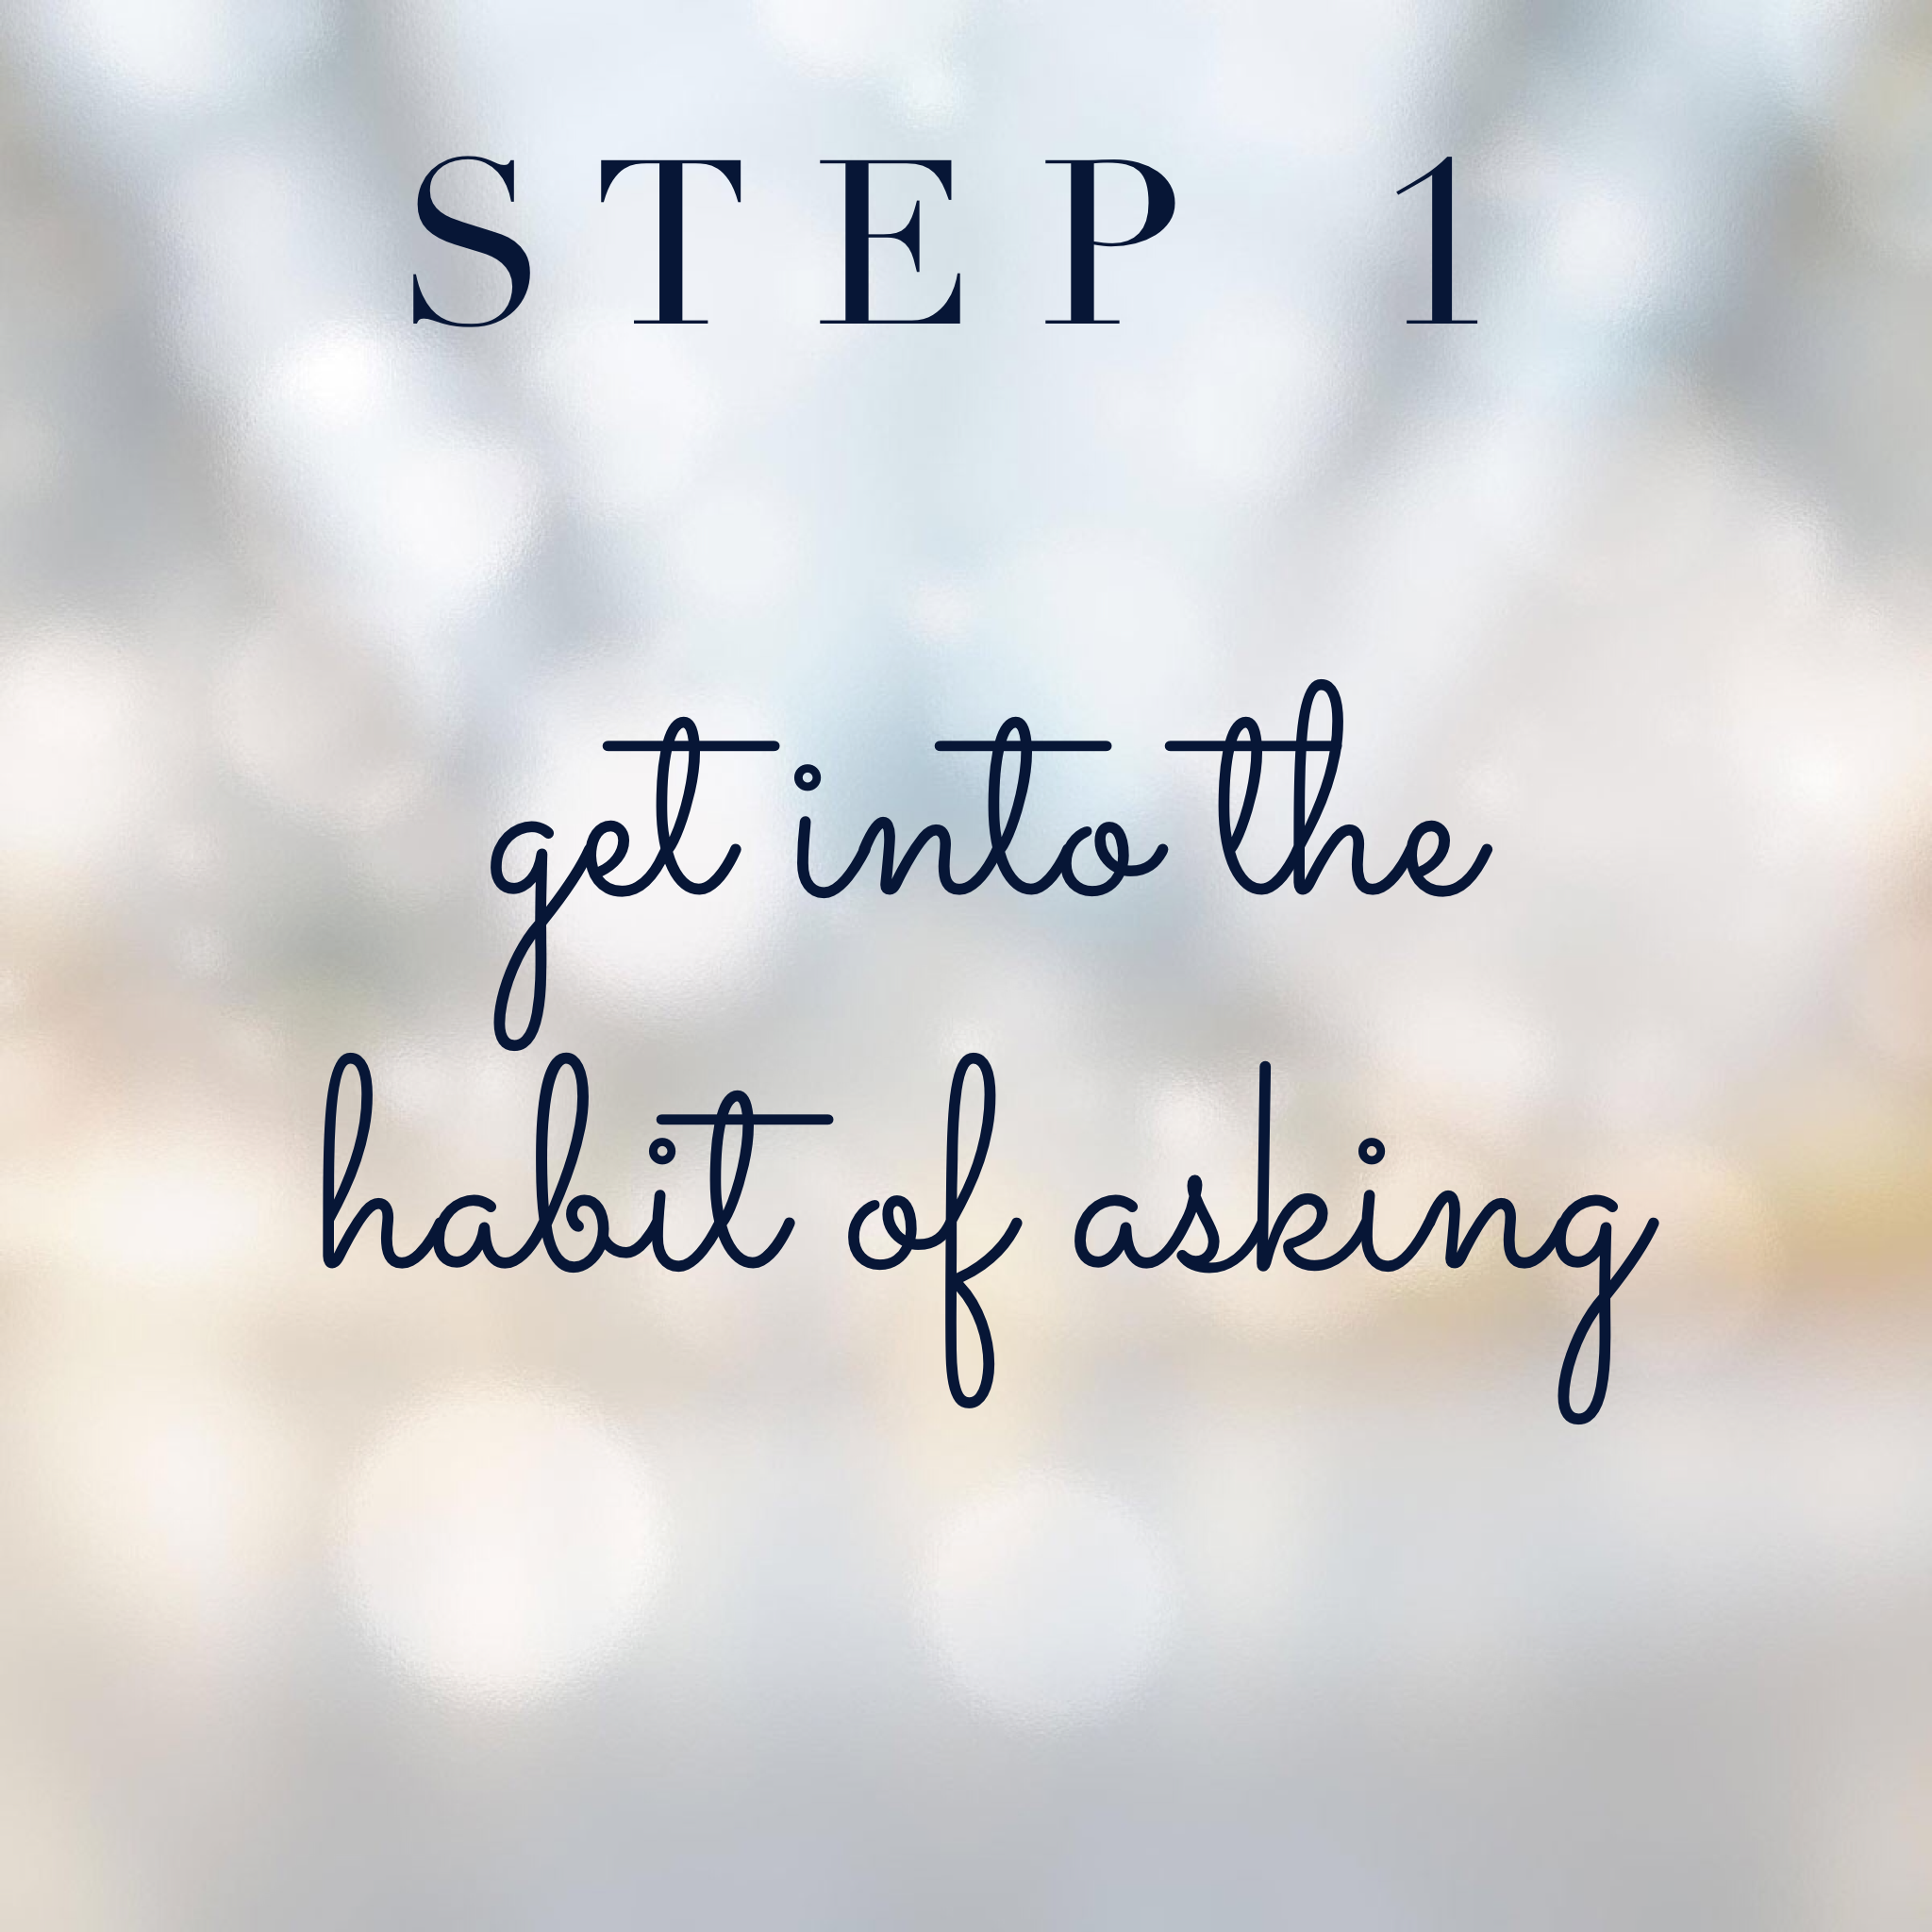 Connect with your spirit guides step 1: Get into the habit of asking